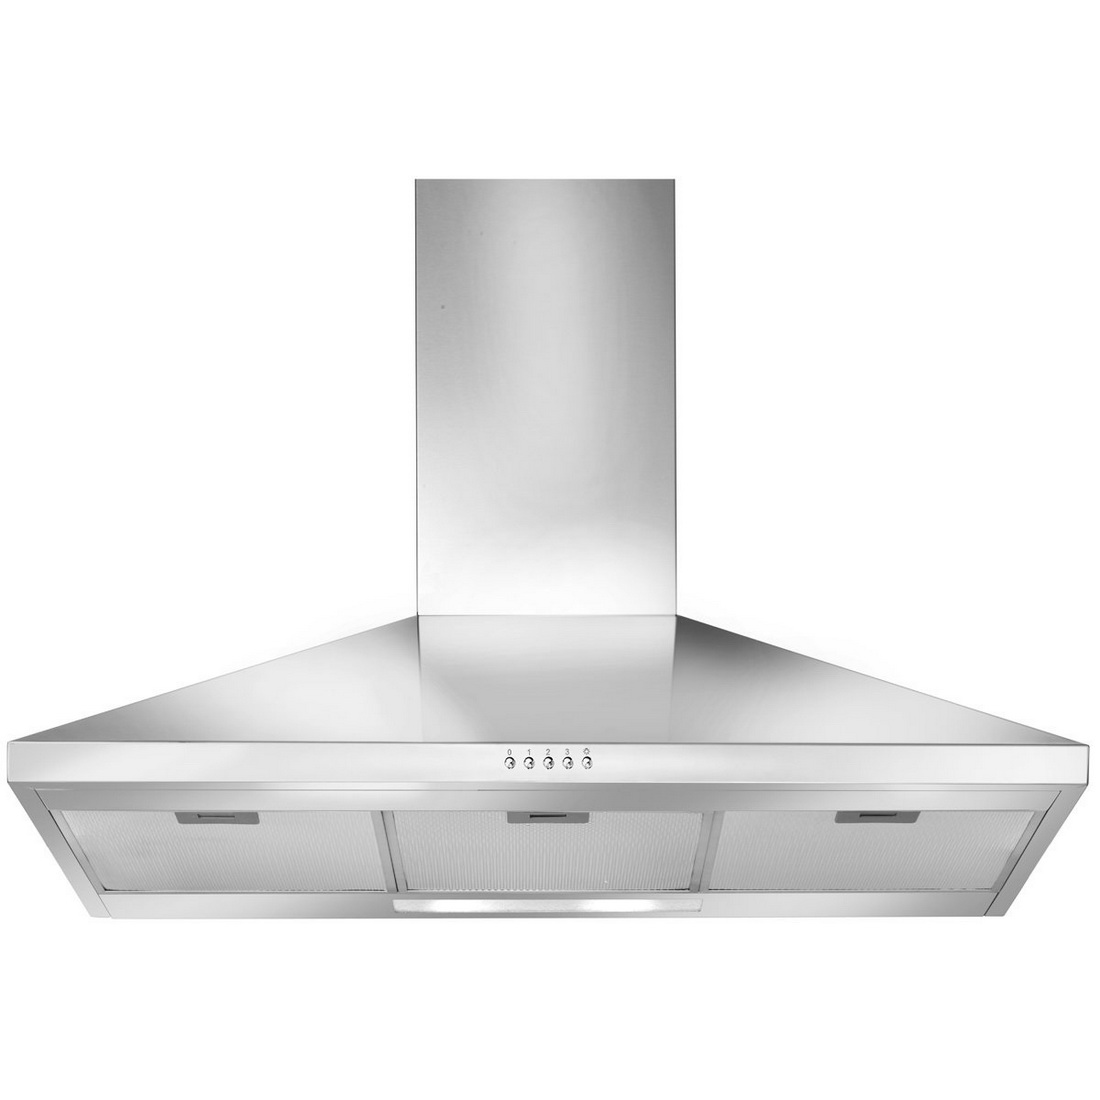 Canopy Wall Mount Rangehood 90cm Stainless Steel ACH900X